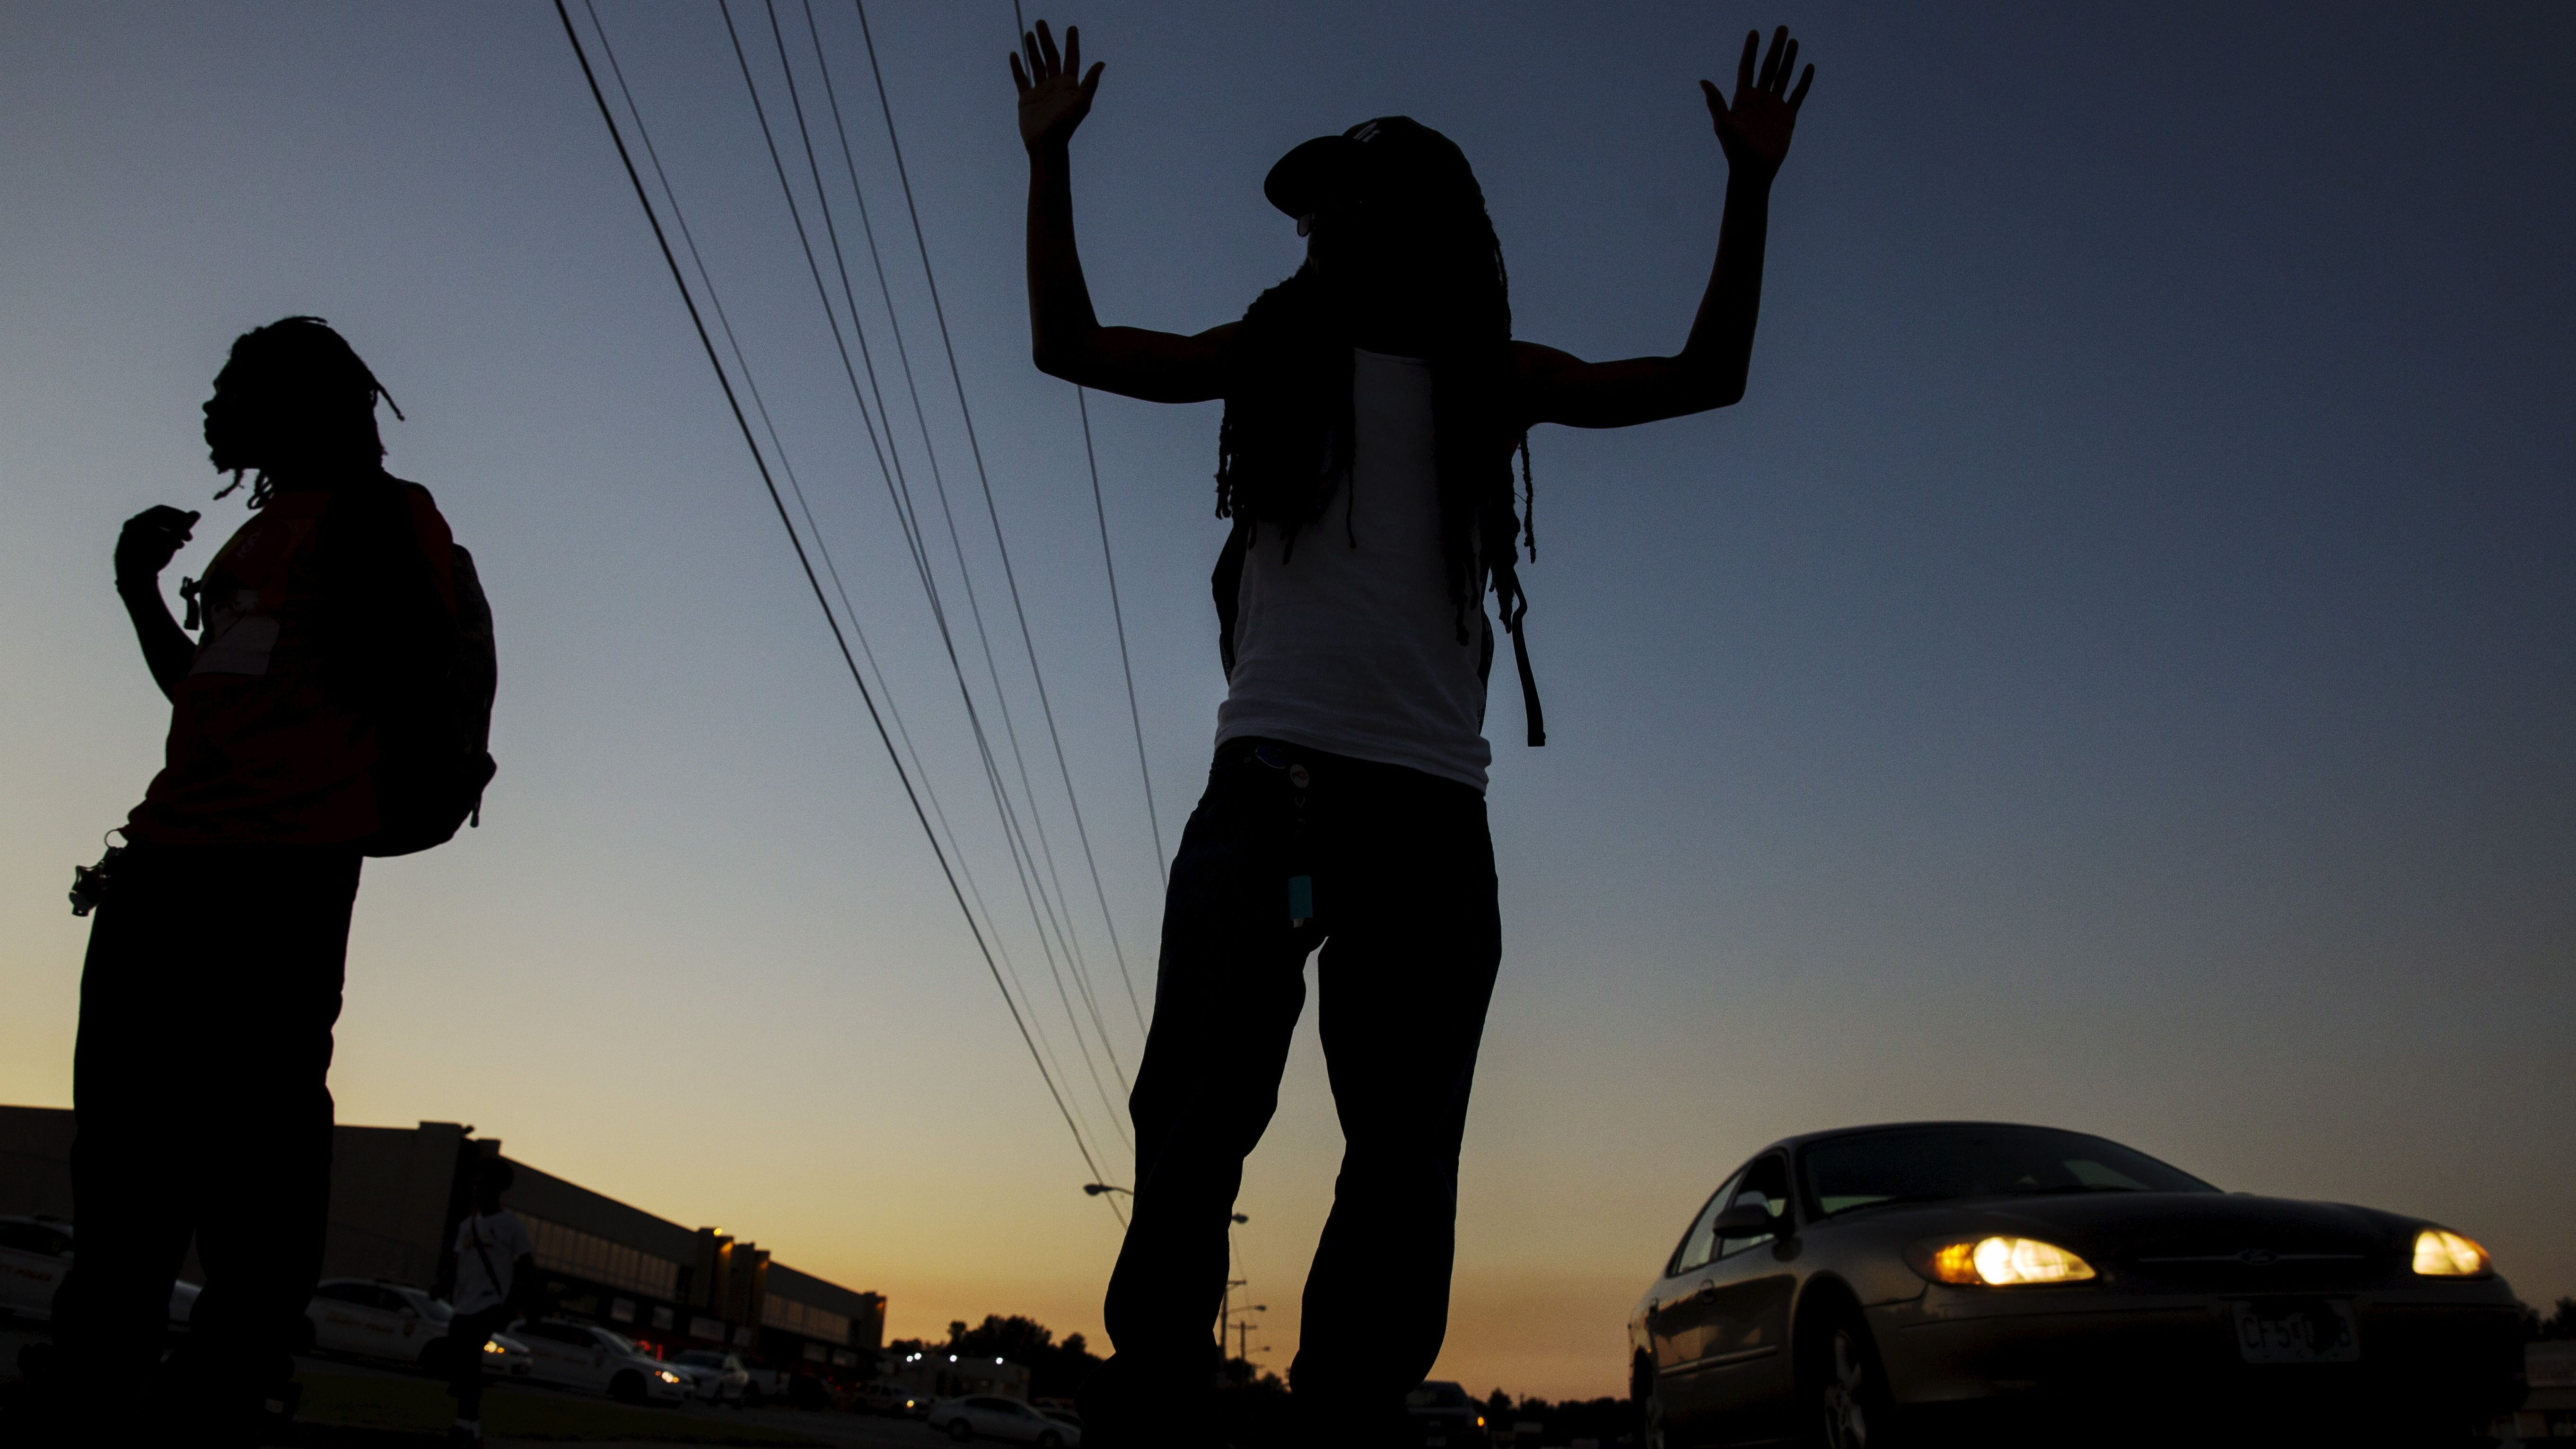 A man gestures on the side of West Florissant Ave. as a much smaller group of demonstrators prepare to protest for another night in Ferguson, Missouri